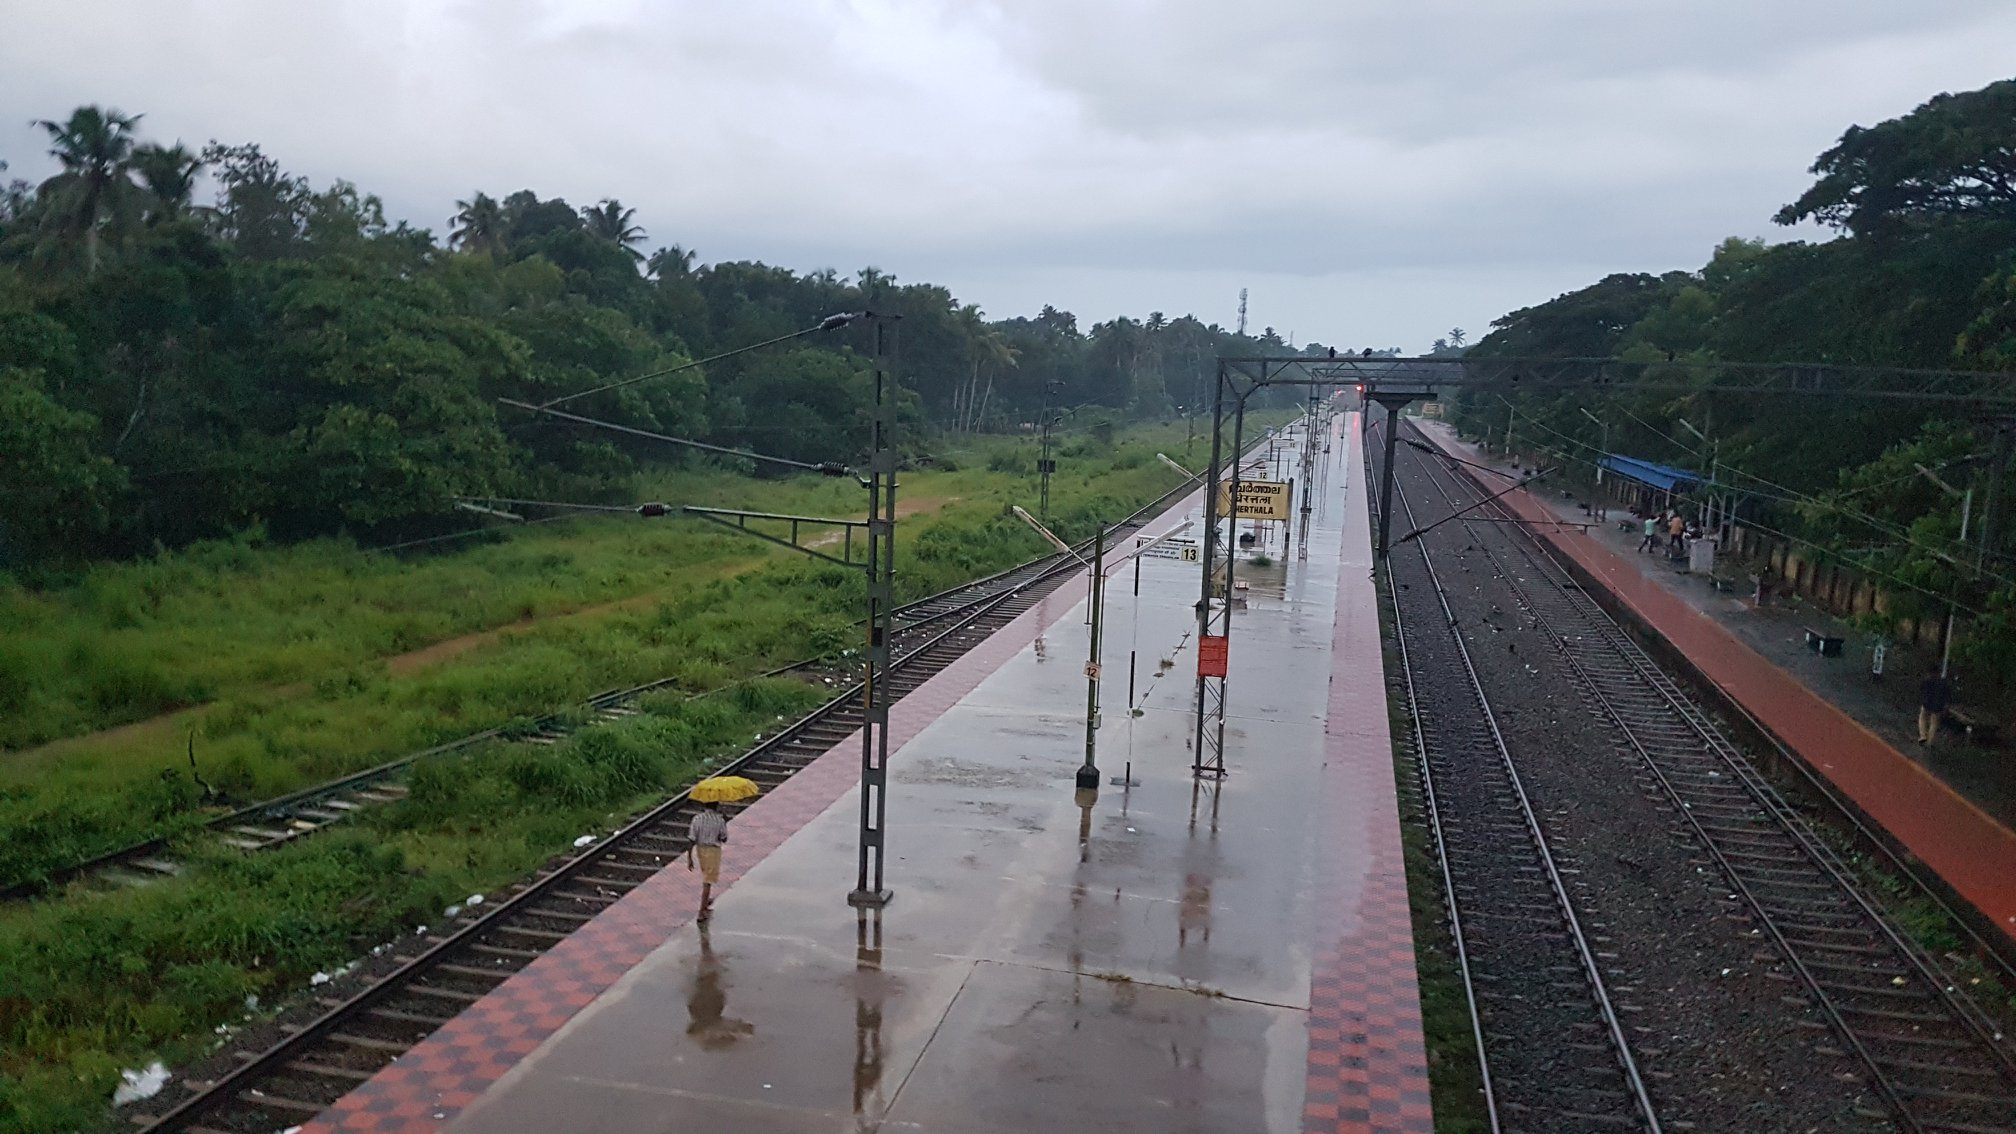 Wet Morning in Cherthala (Kerala)